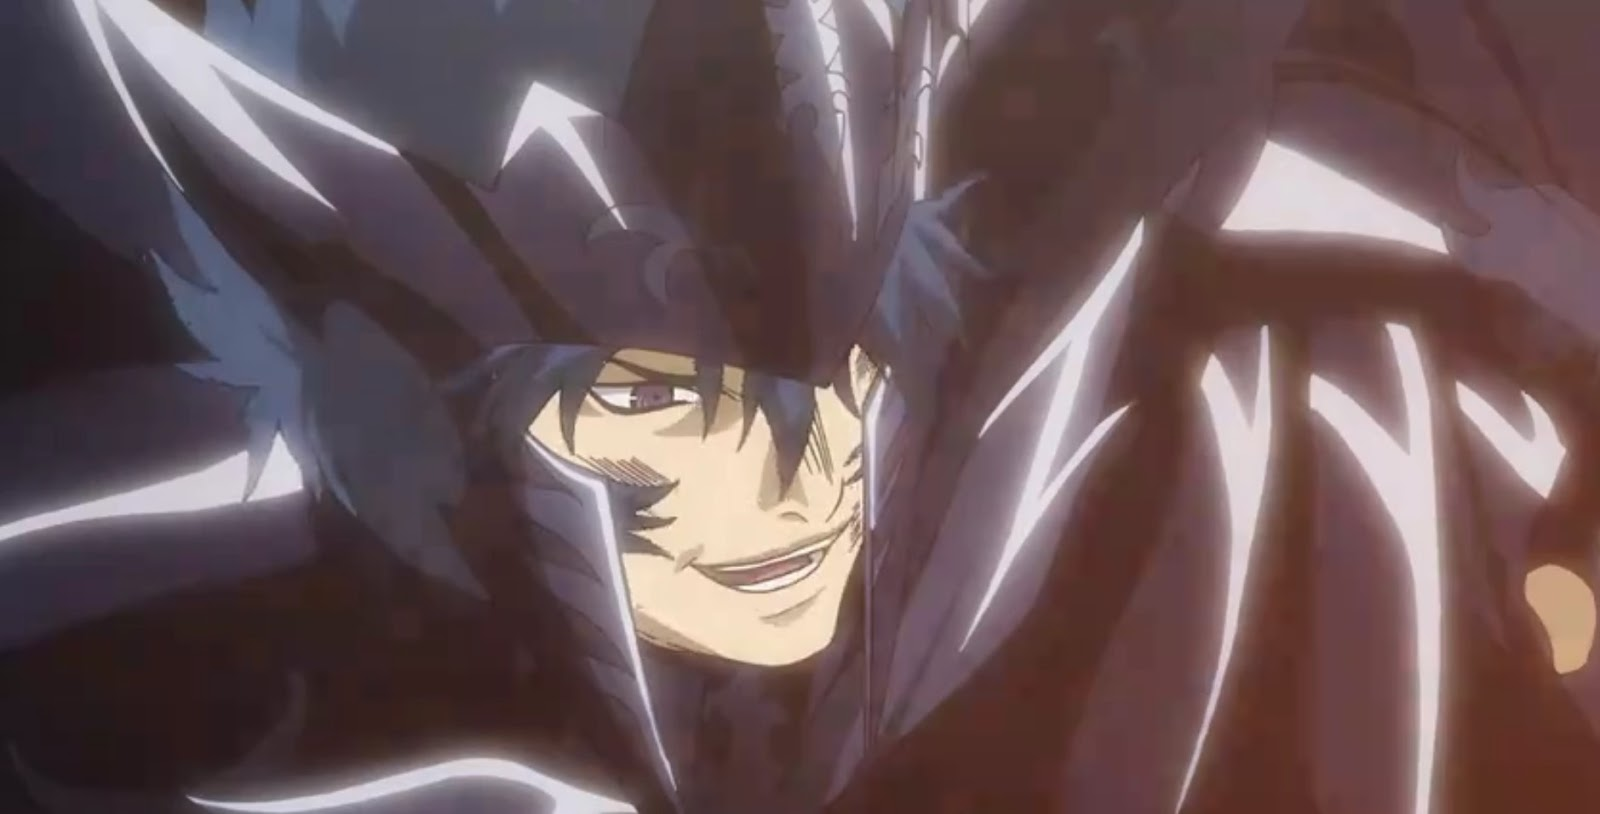 Saint Seiya: The Lost Canvas Episodio 10 Dublado